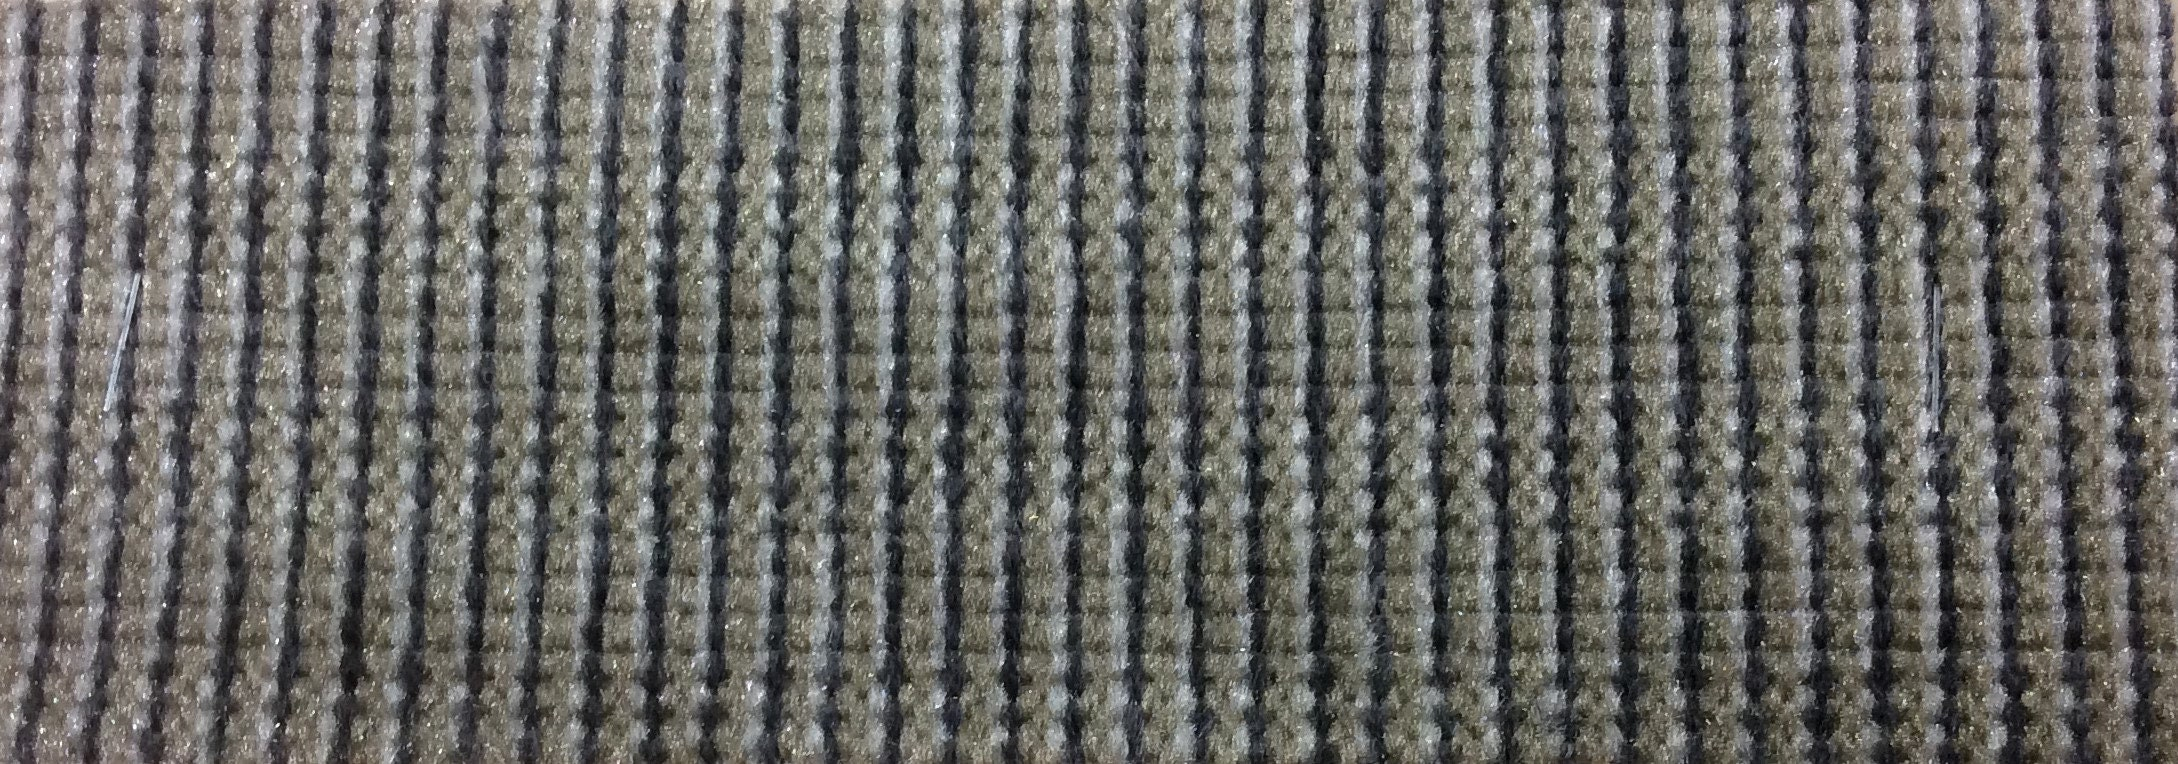 BTY Vintage 1988 Chevrolet Multi-Colored Striped Velour Auto Upholstery